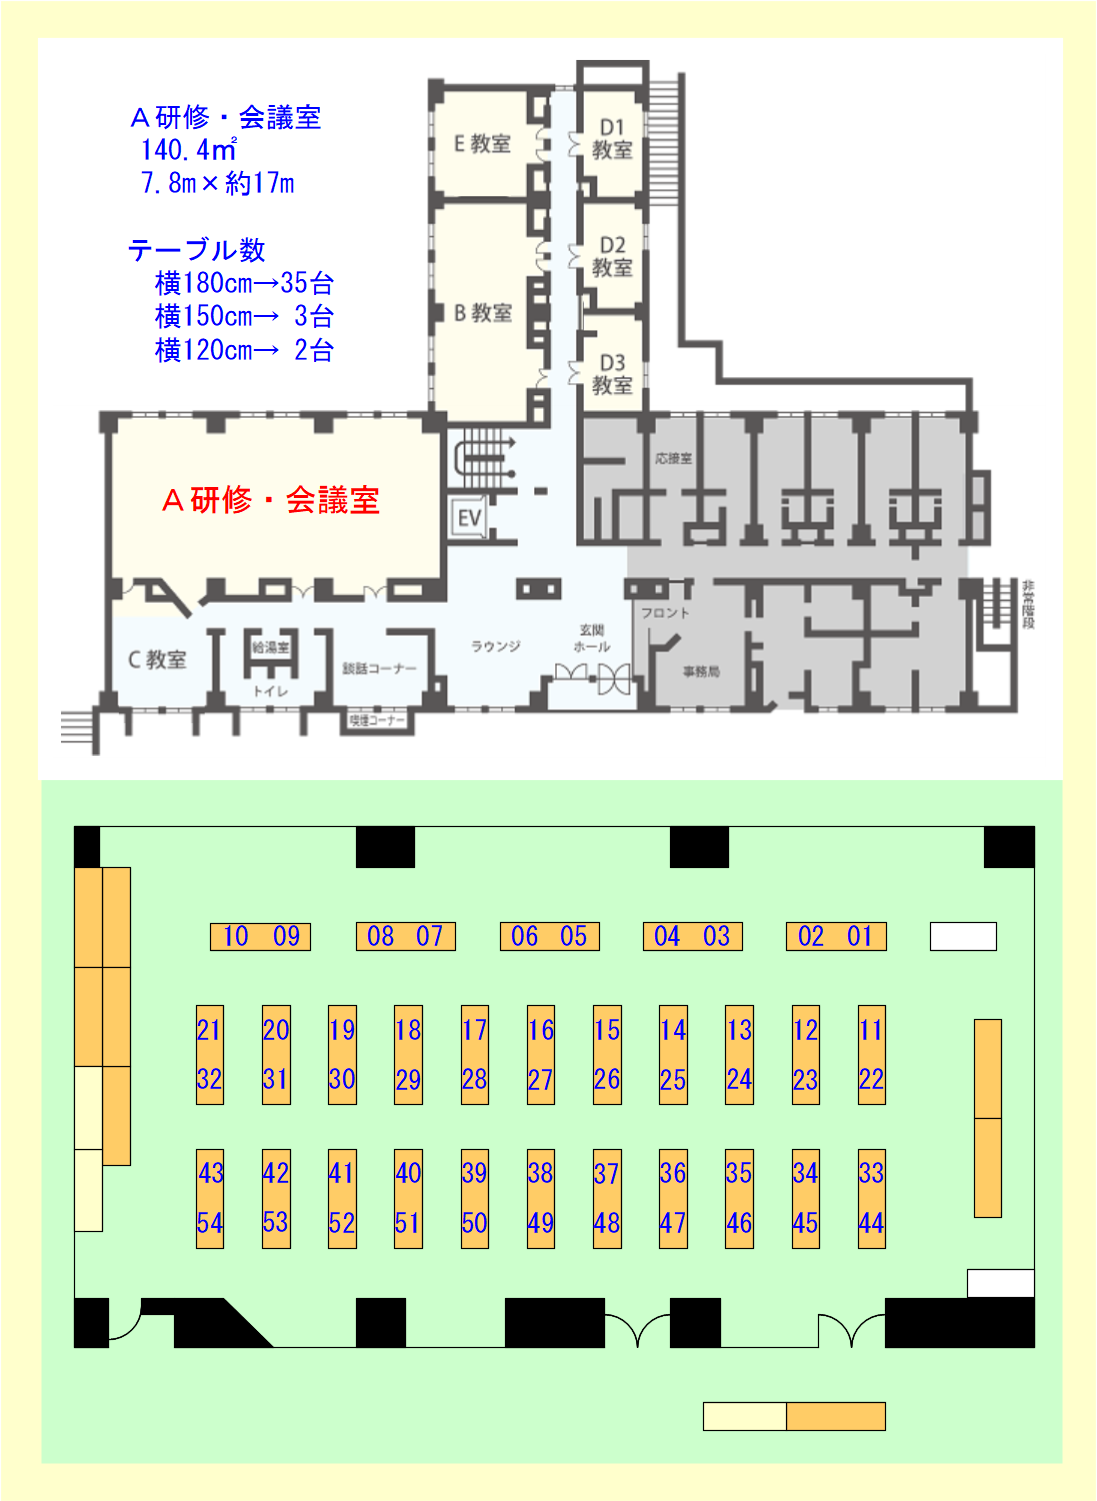 A研修・会議室 パズる会2017.png